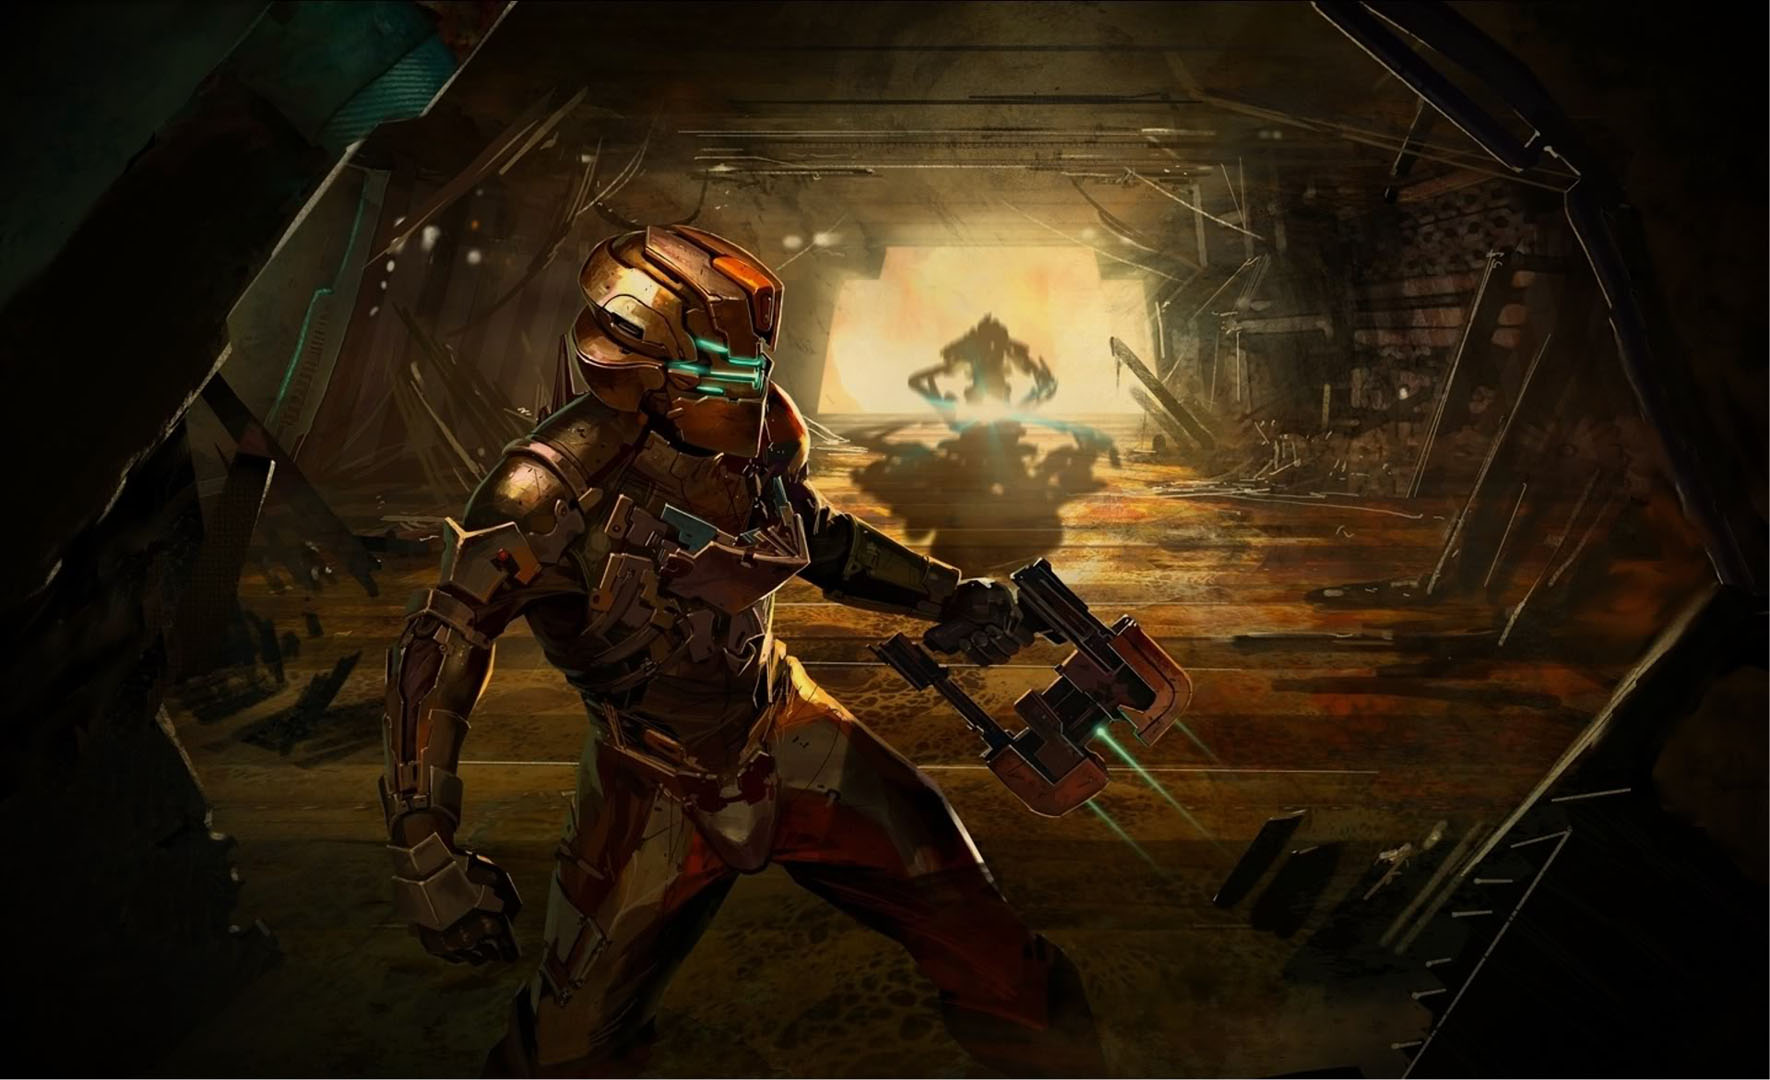 In the background scary games wallpaper image featuring dead space 2